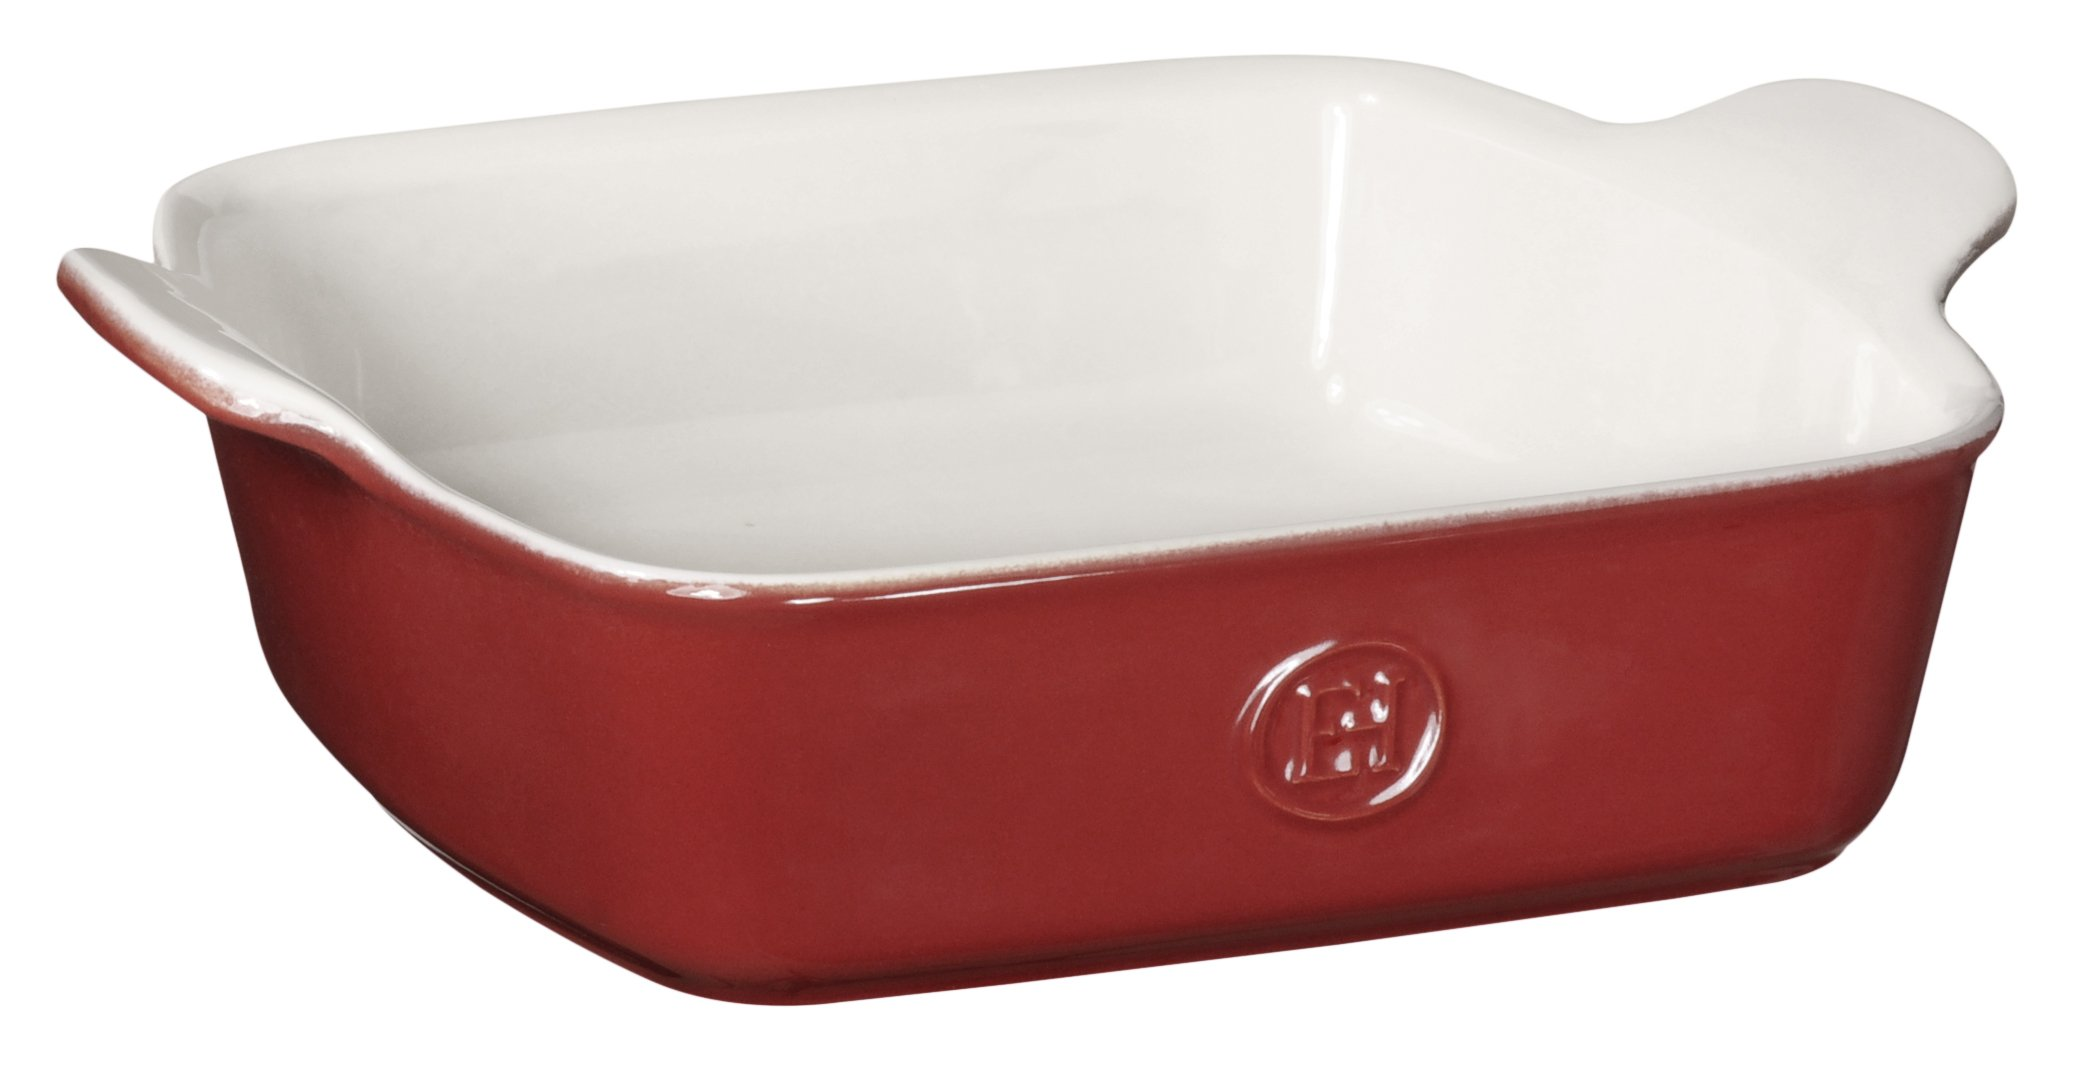 Emile Henry Made In France HR Modern Classics Square Baking Dish 8 x 8'' / 2 Qt, Red